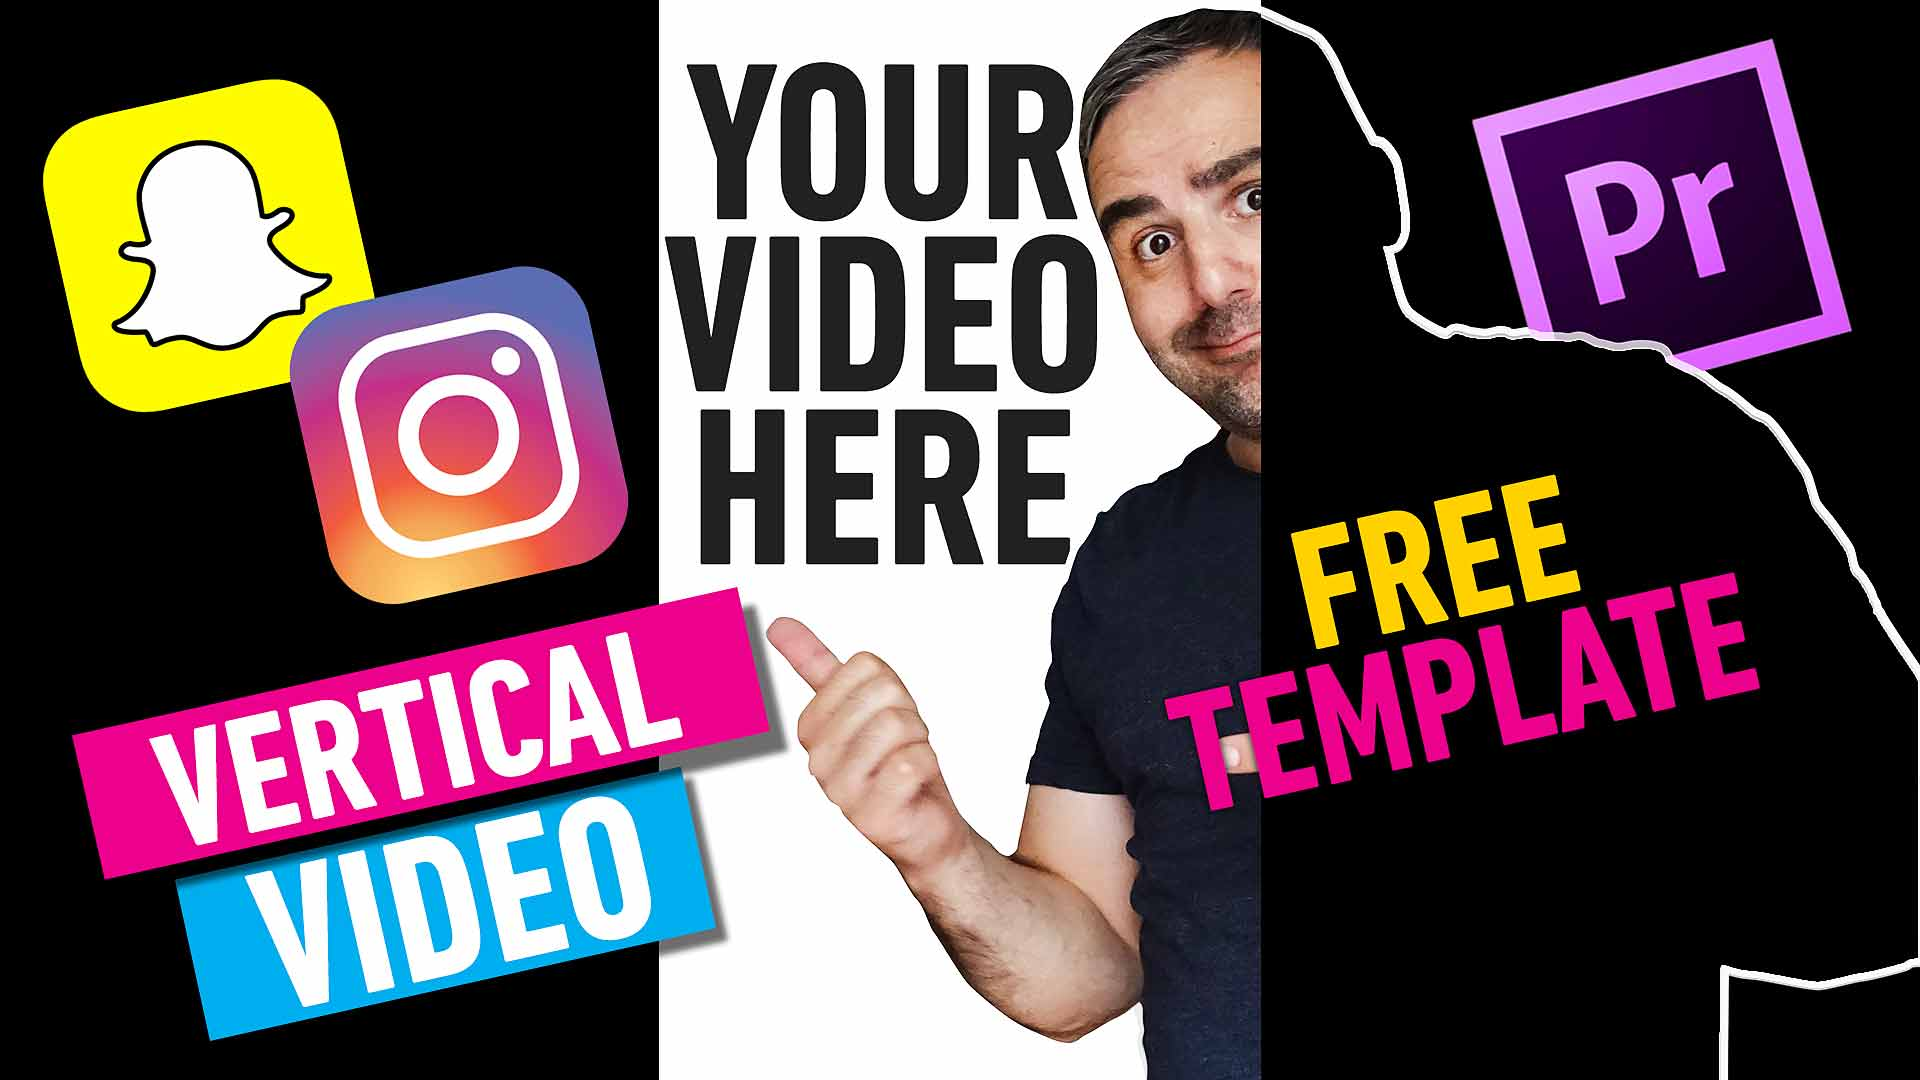 Vertical Video - free template for Instagram and Snapchat - Premiere Pro